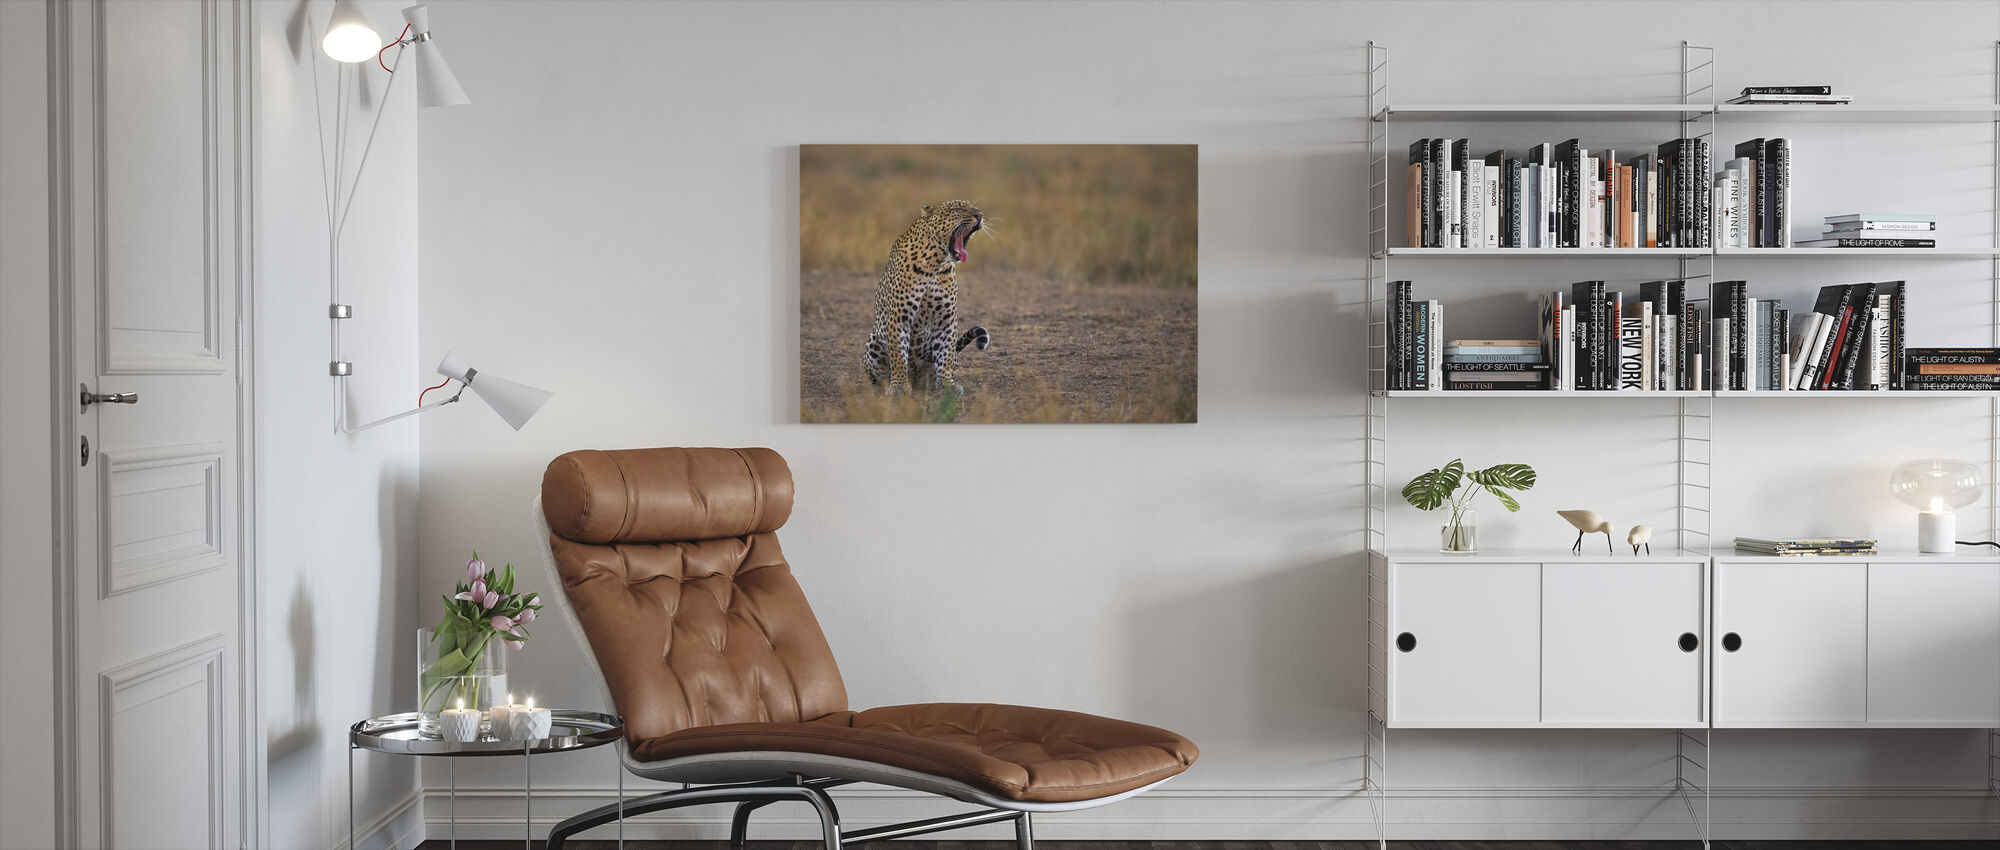 Yawning Leopard - Canvas print - Living Room